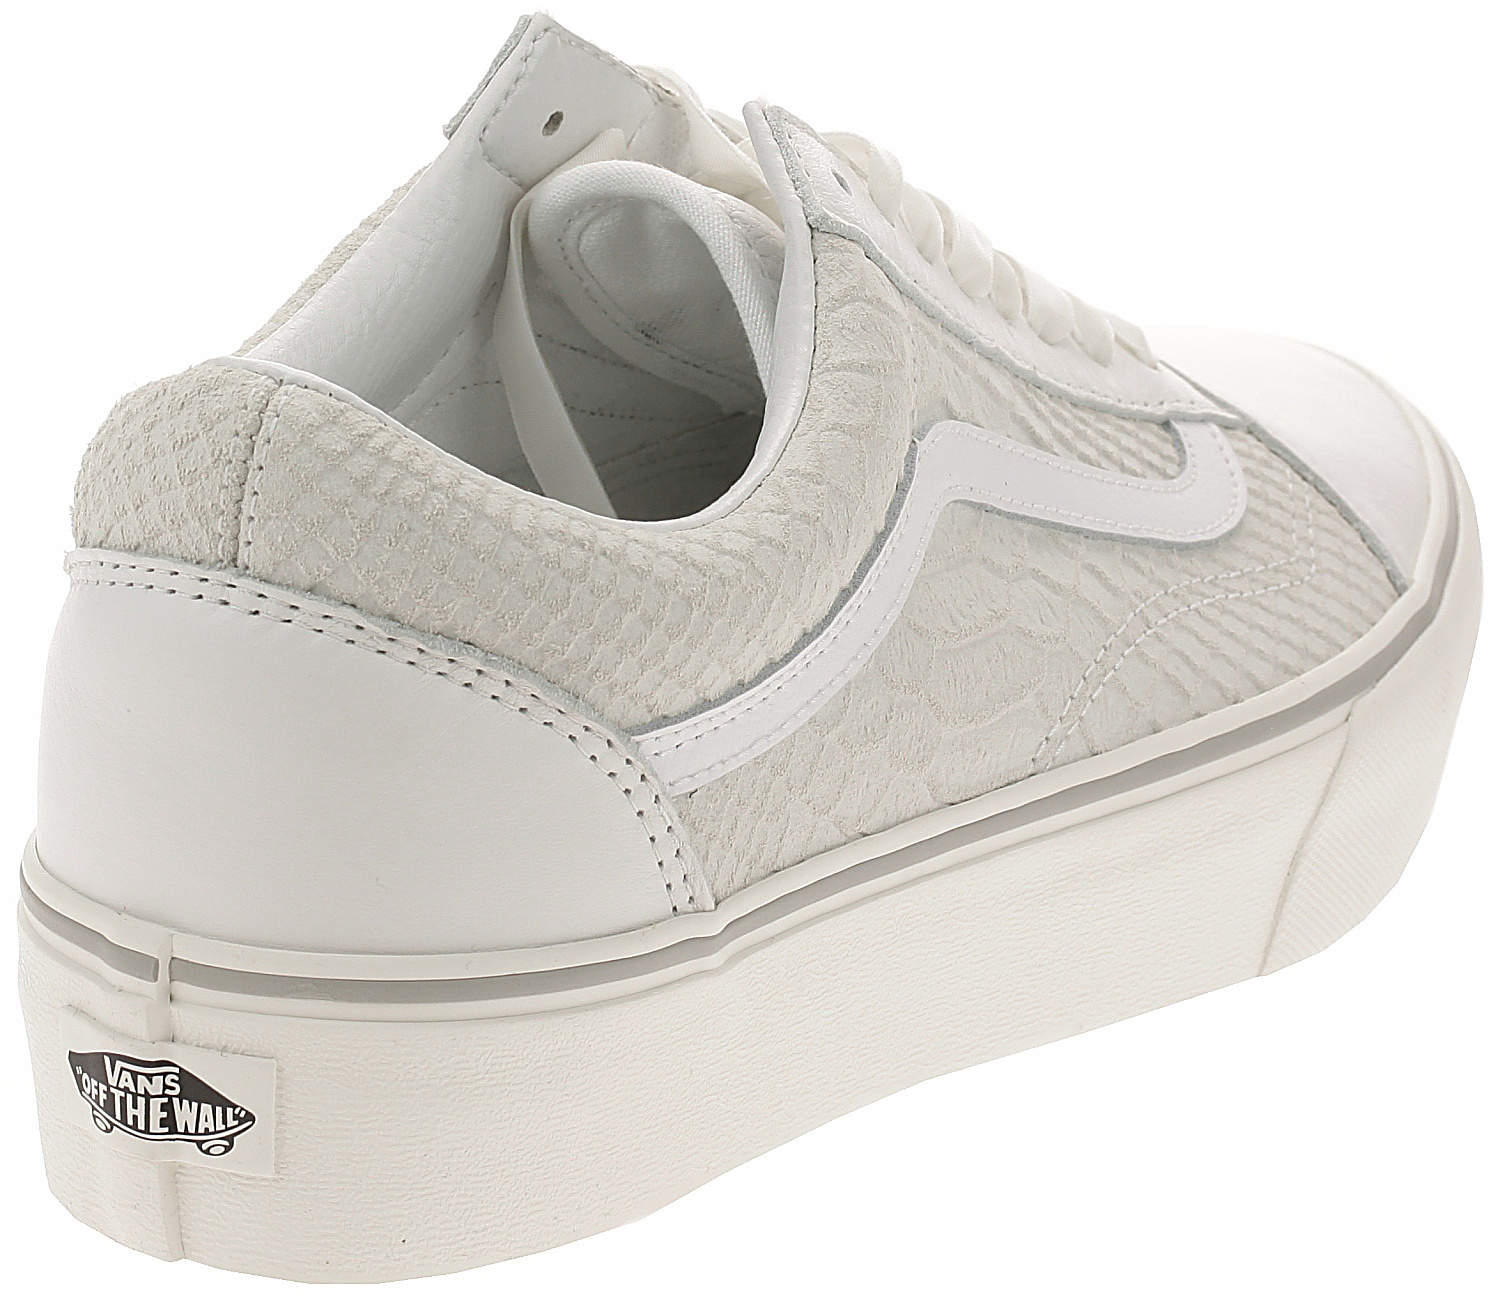 e82203a37f1 zapatos Vans Old Skool Platform - Leather Snake White - Snowboard ...